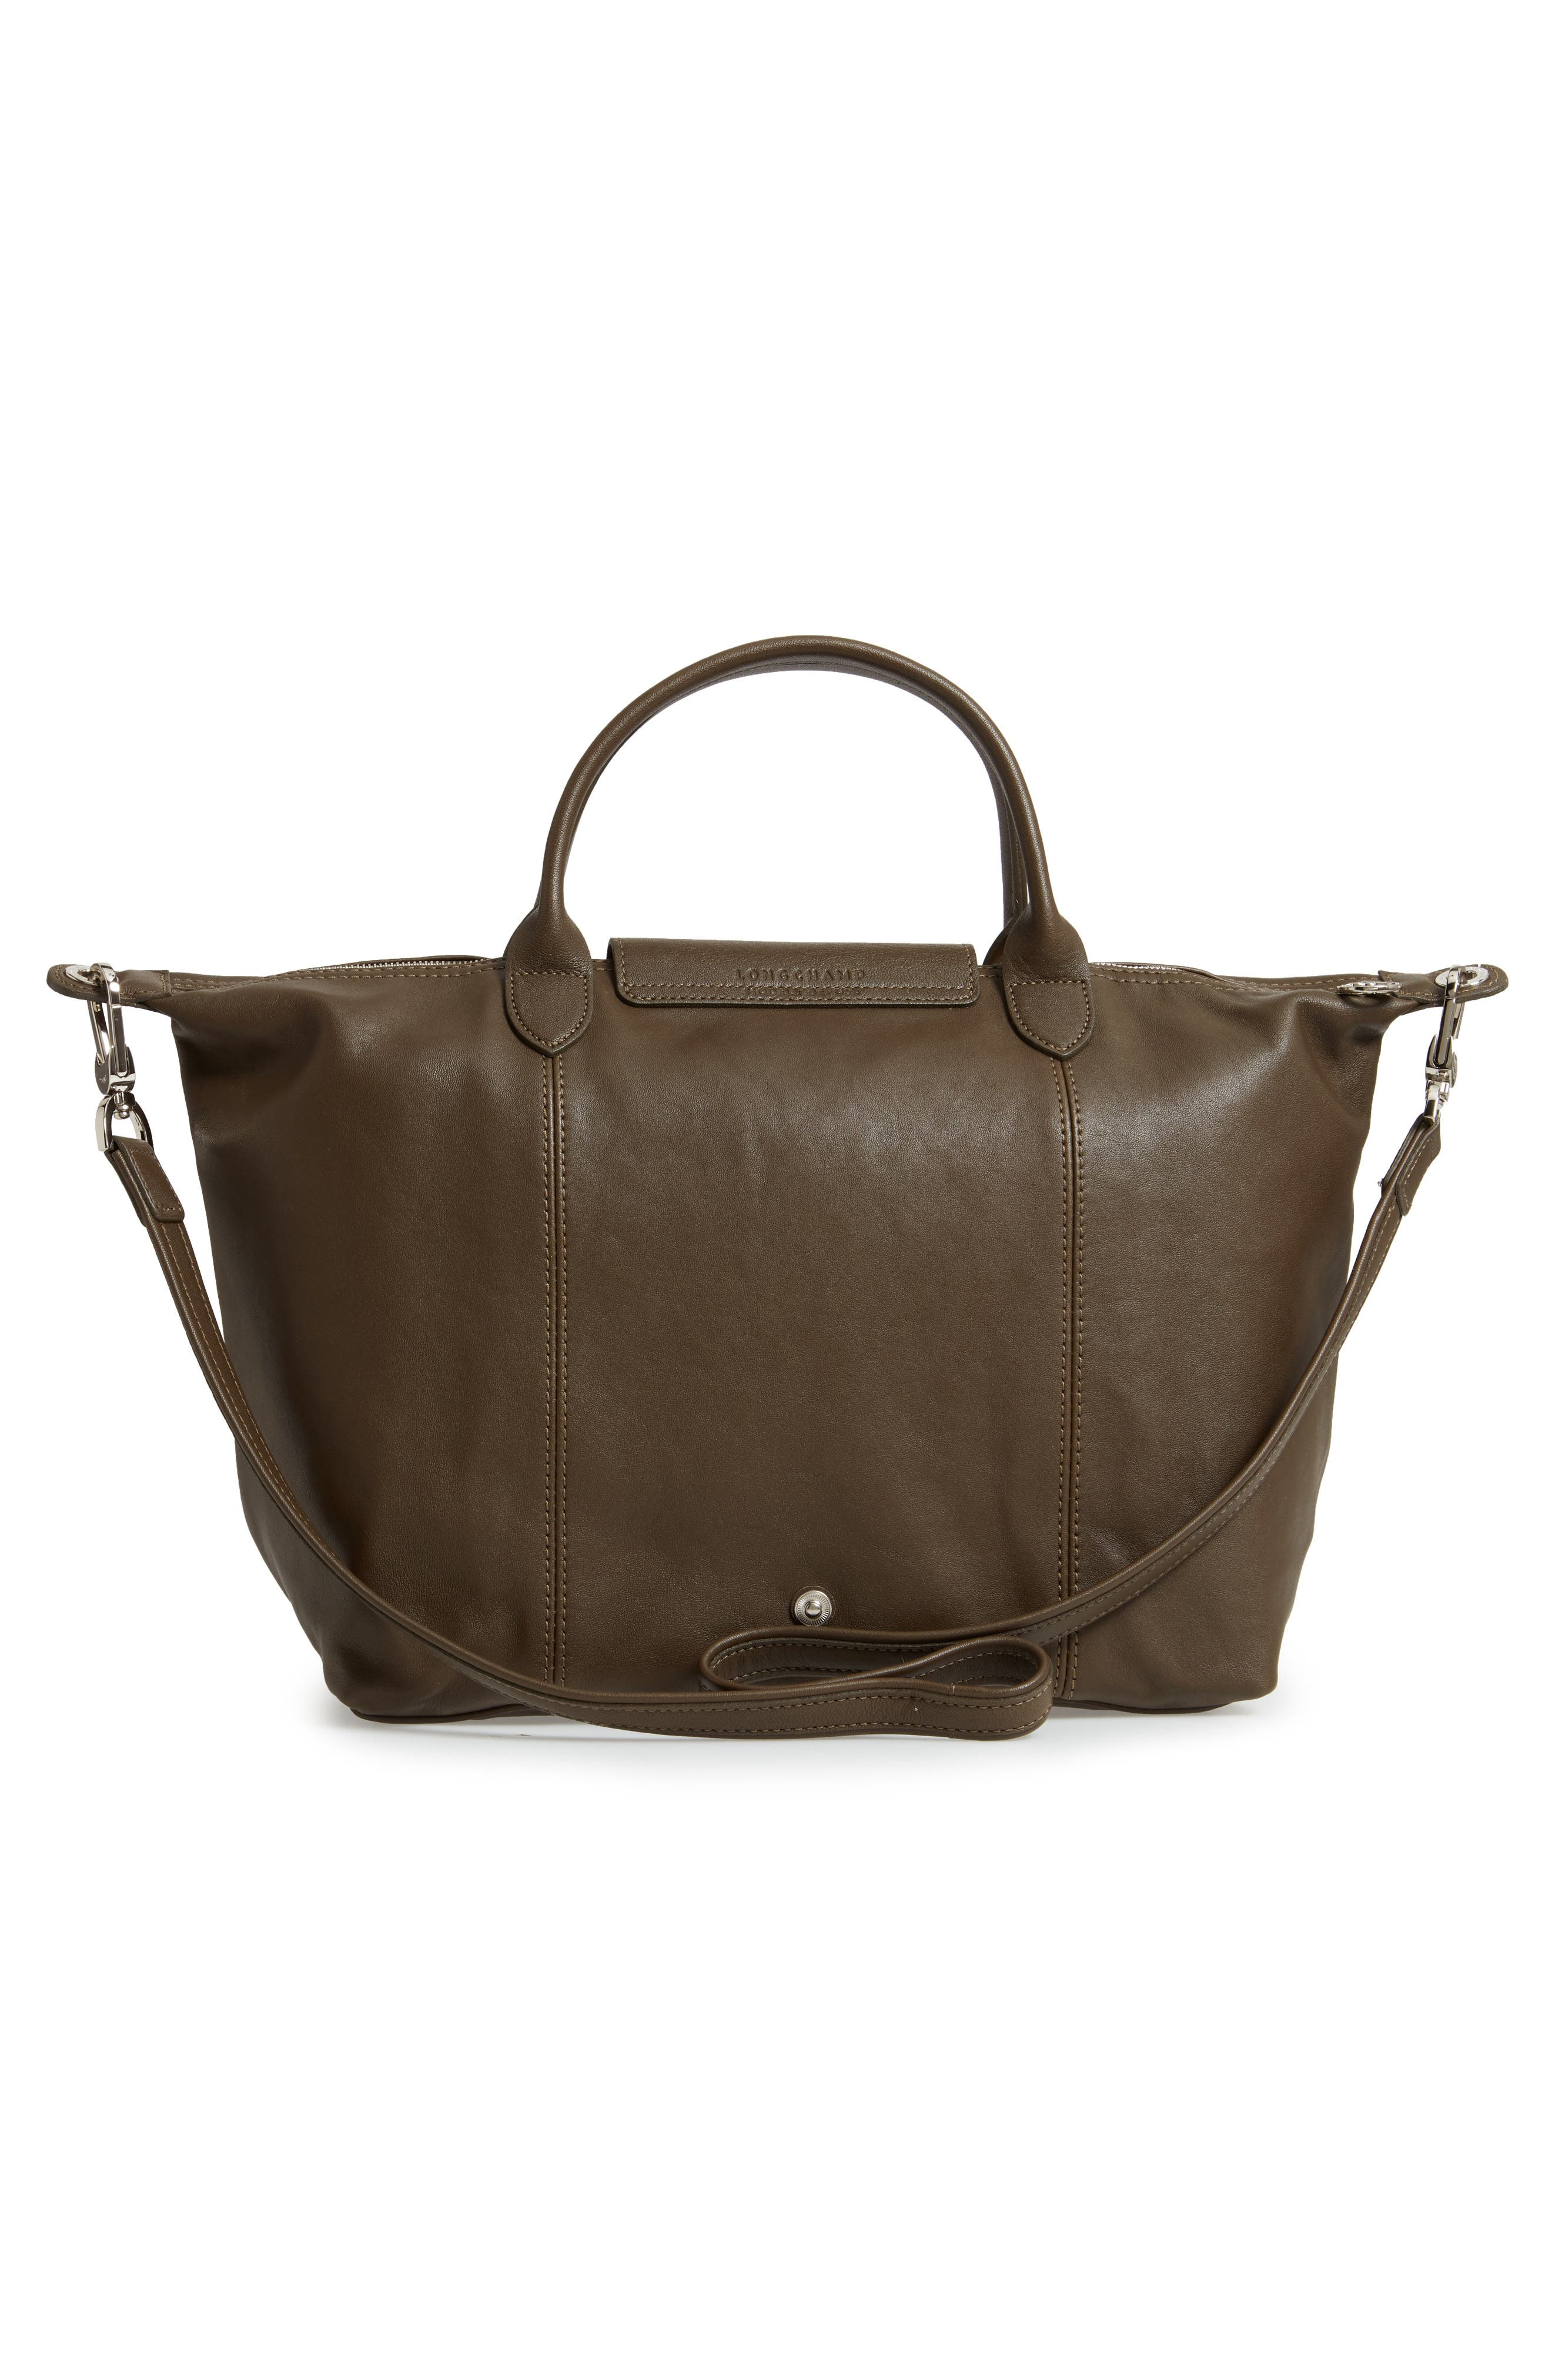 Medium 'Le Pliage Cuir' Leather Top Handle Tote,                             Alternate thumbnail 3, color,                             301